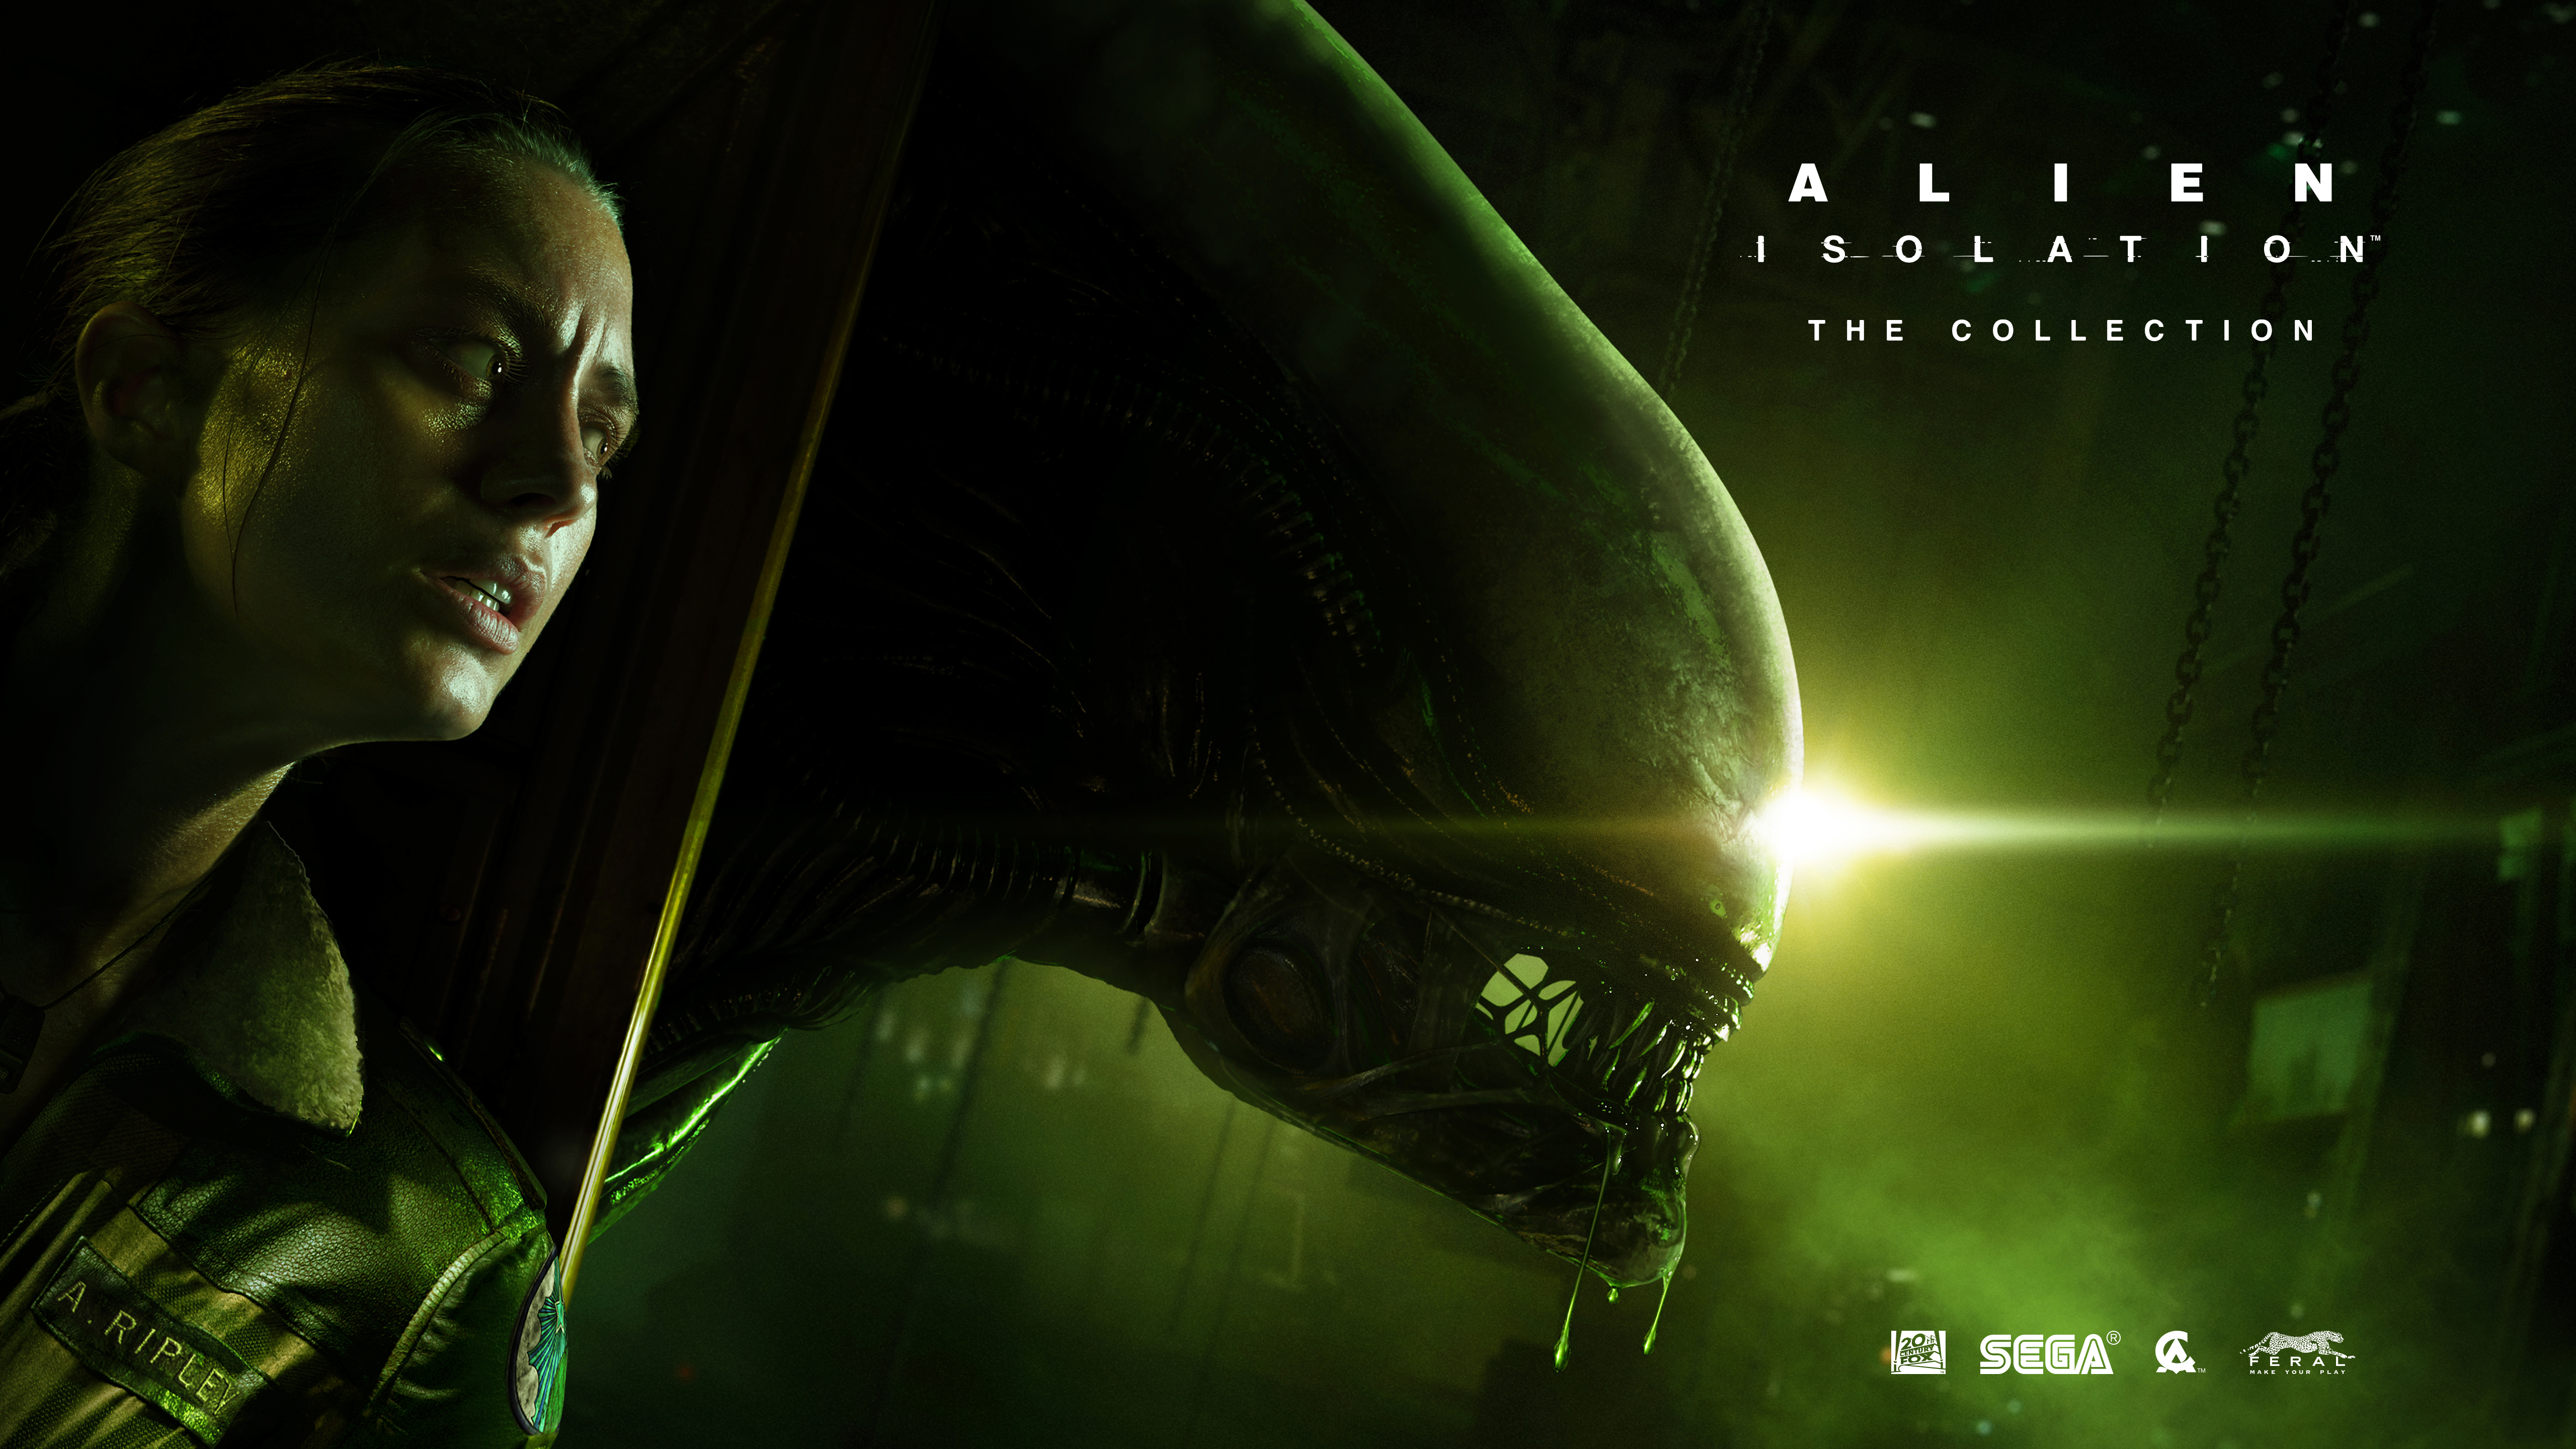 Fall Wallpaper For Ipad Air 2 Alien Isolation For Mac And Linux Media Feral